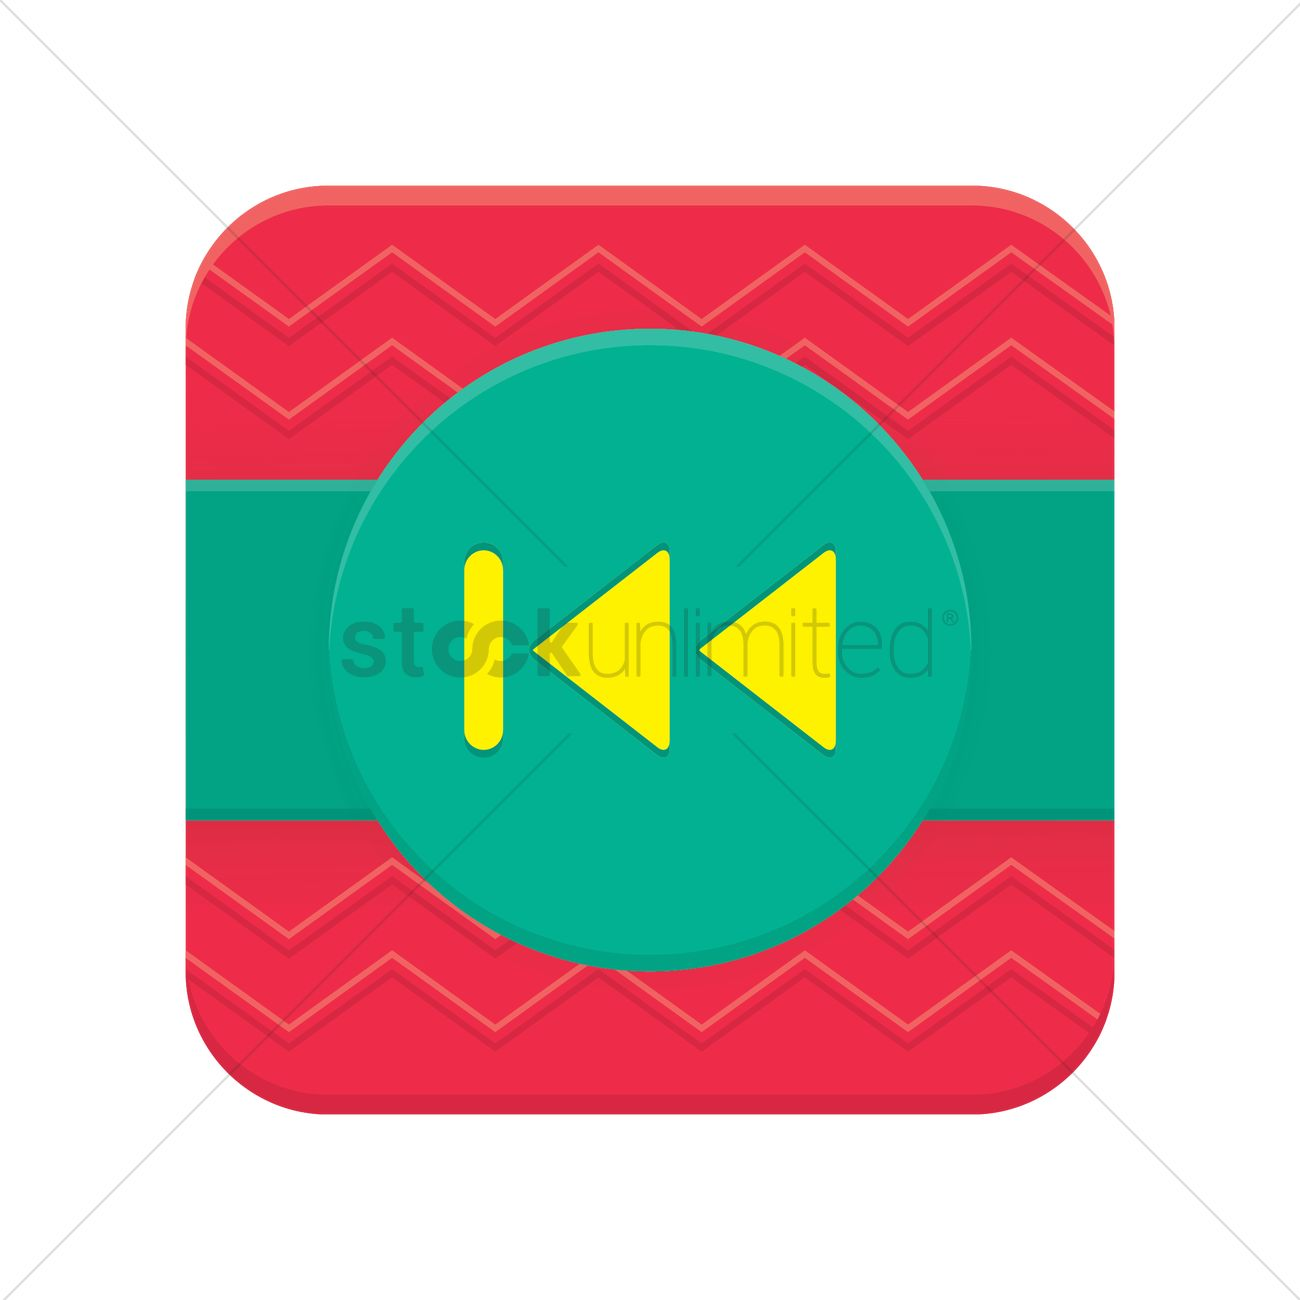 1300x1300 Rewind To The Start Button Vector Image